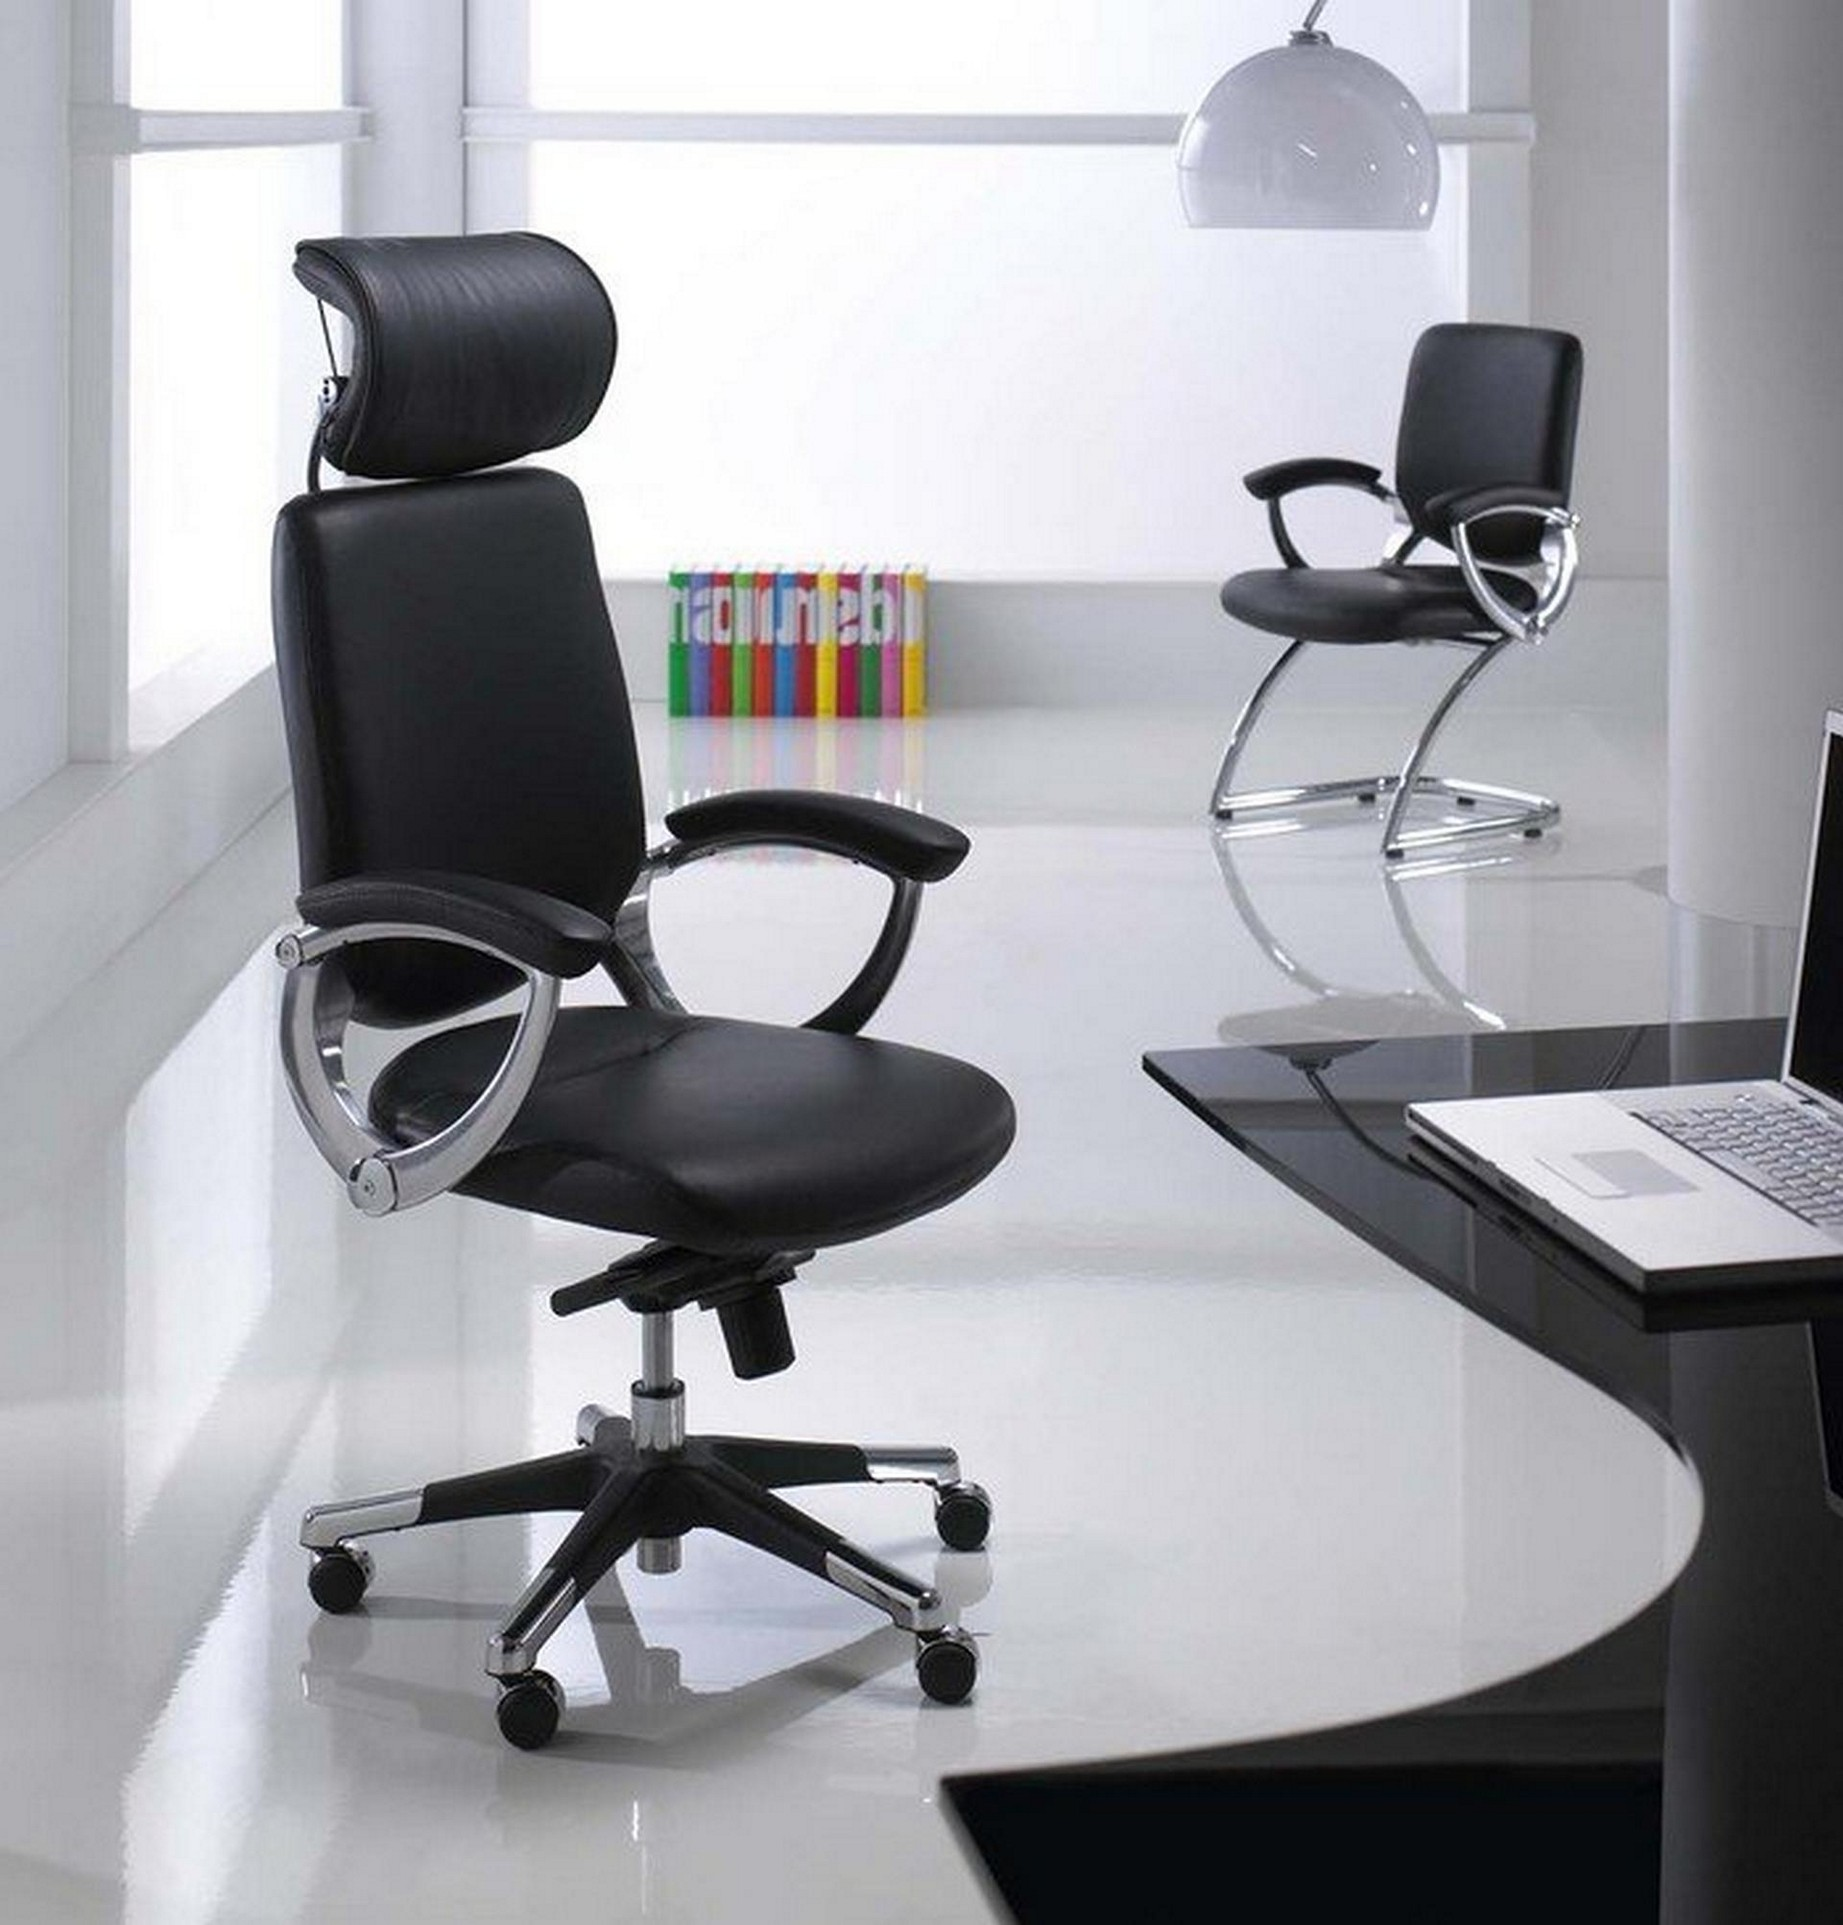 Chairs And More: 9 Different Ways To Make Your Office Chair More Comfortable